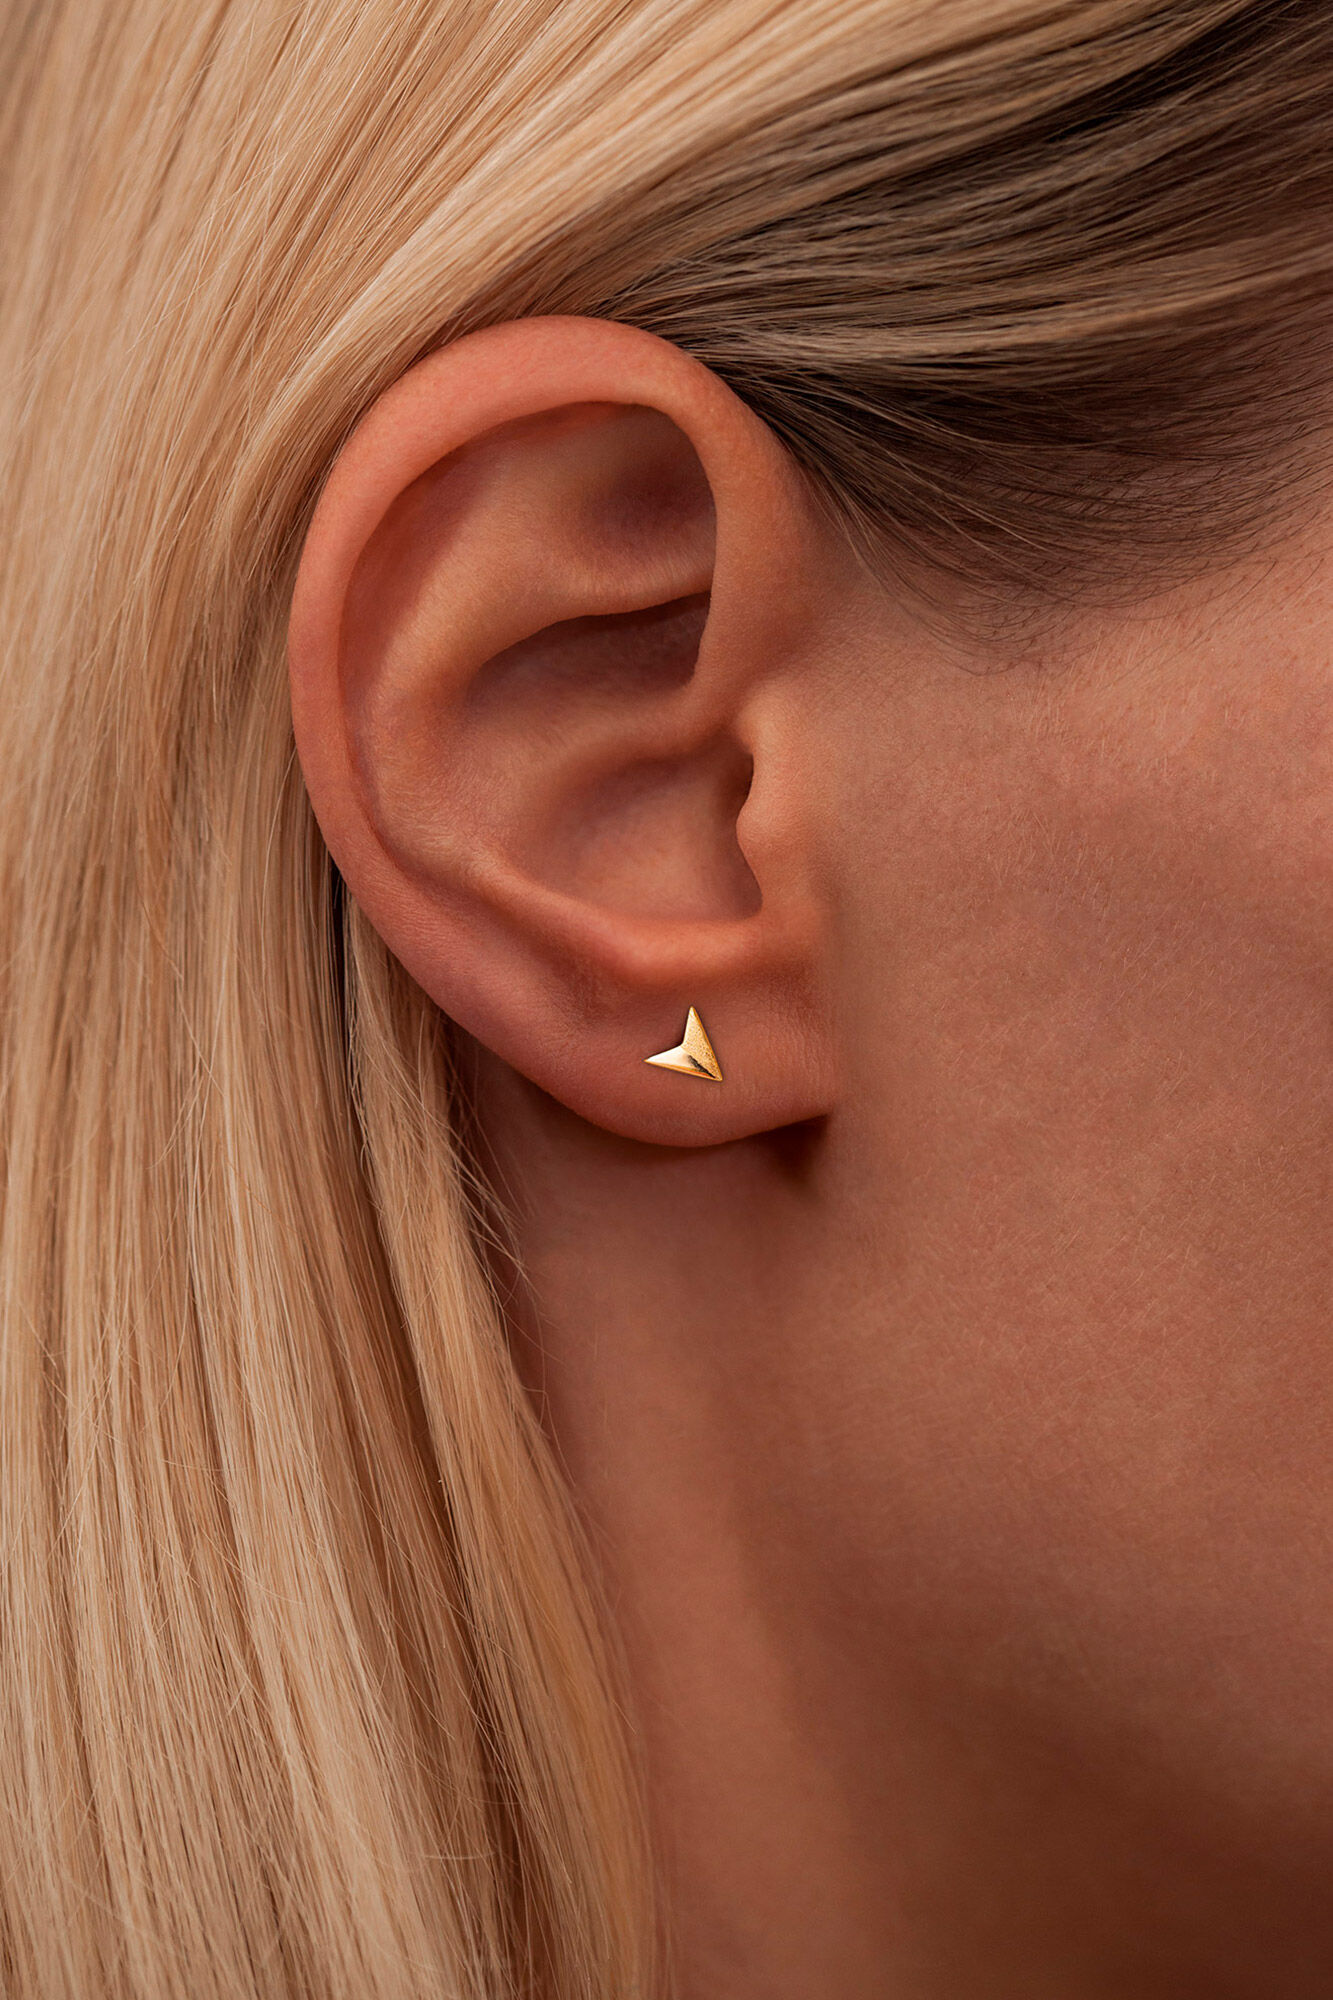 Paperplane Ear Stud LULUE197, GOLD PLATED